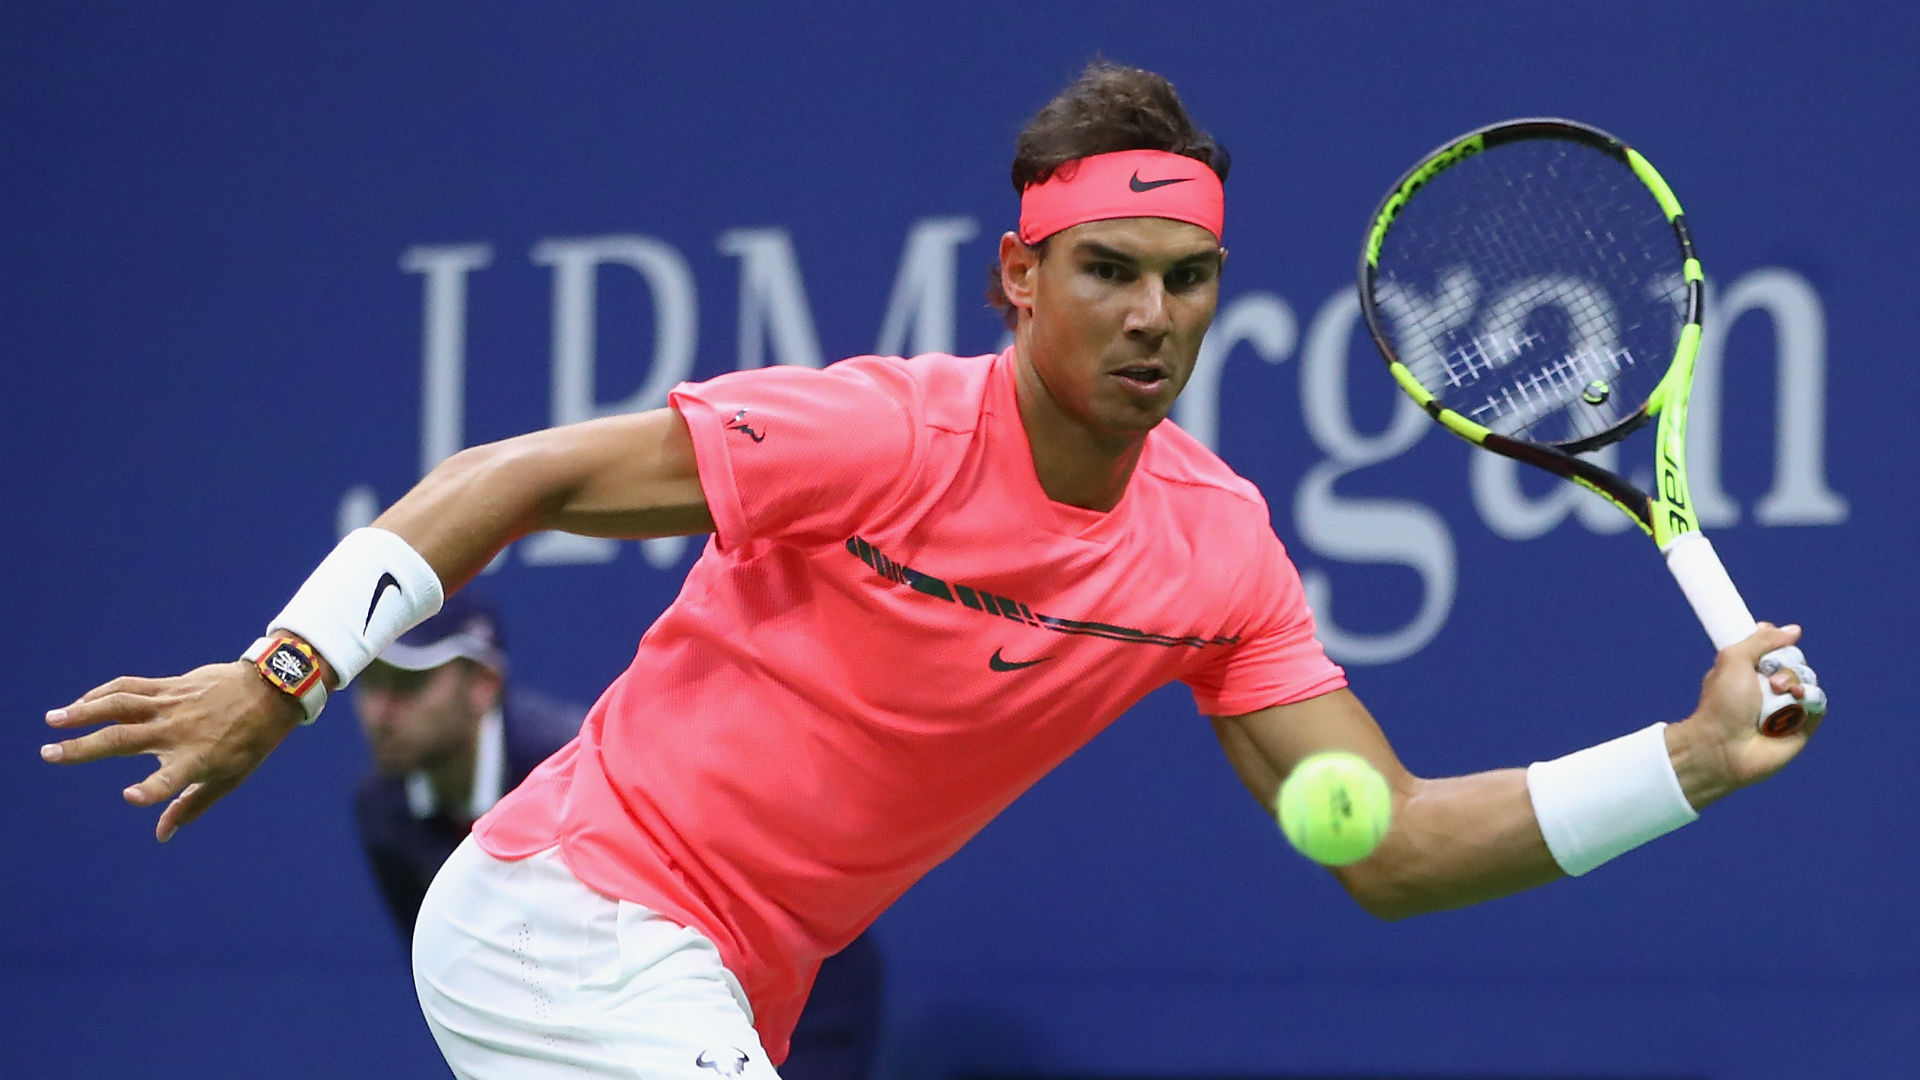 U.S. Open 2017: Rafael Nadal cruises to set up possible semi vs. Roger Federer